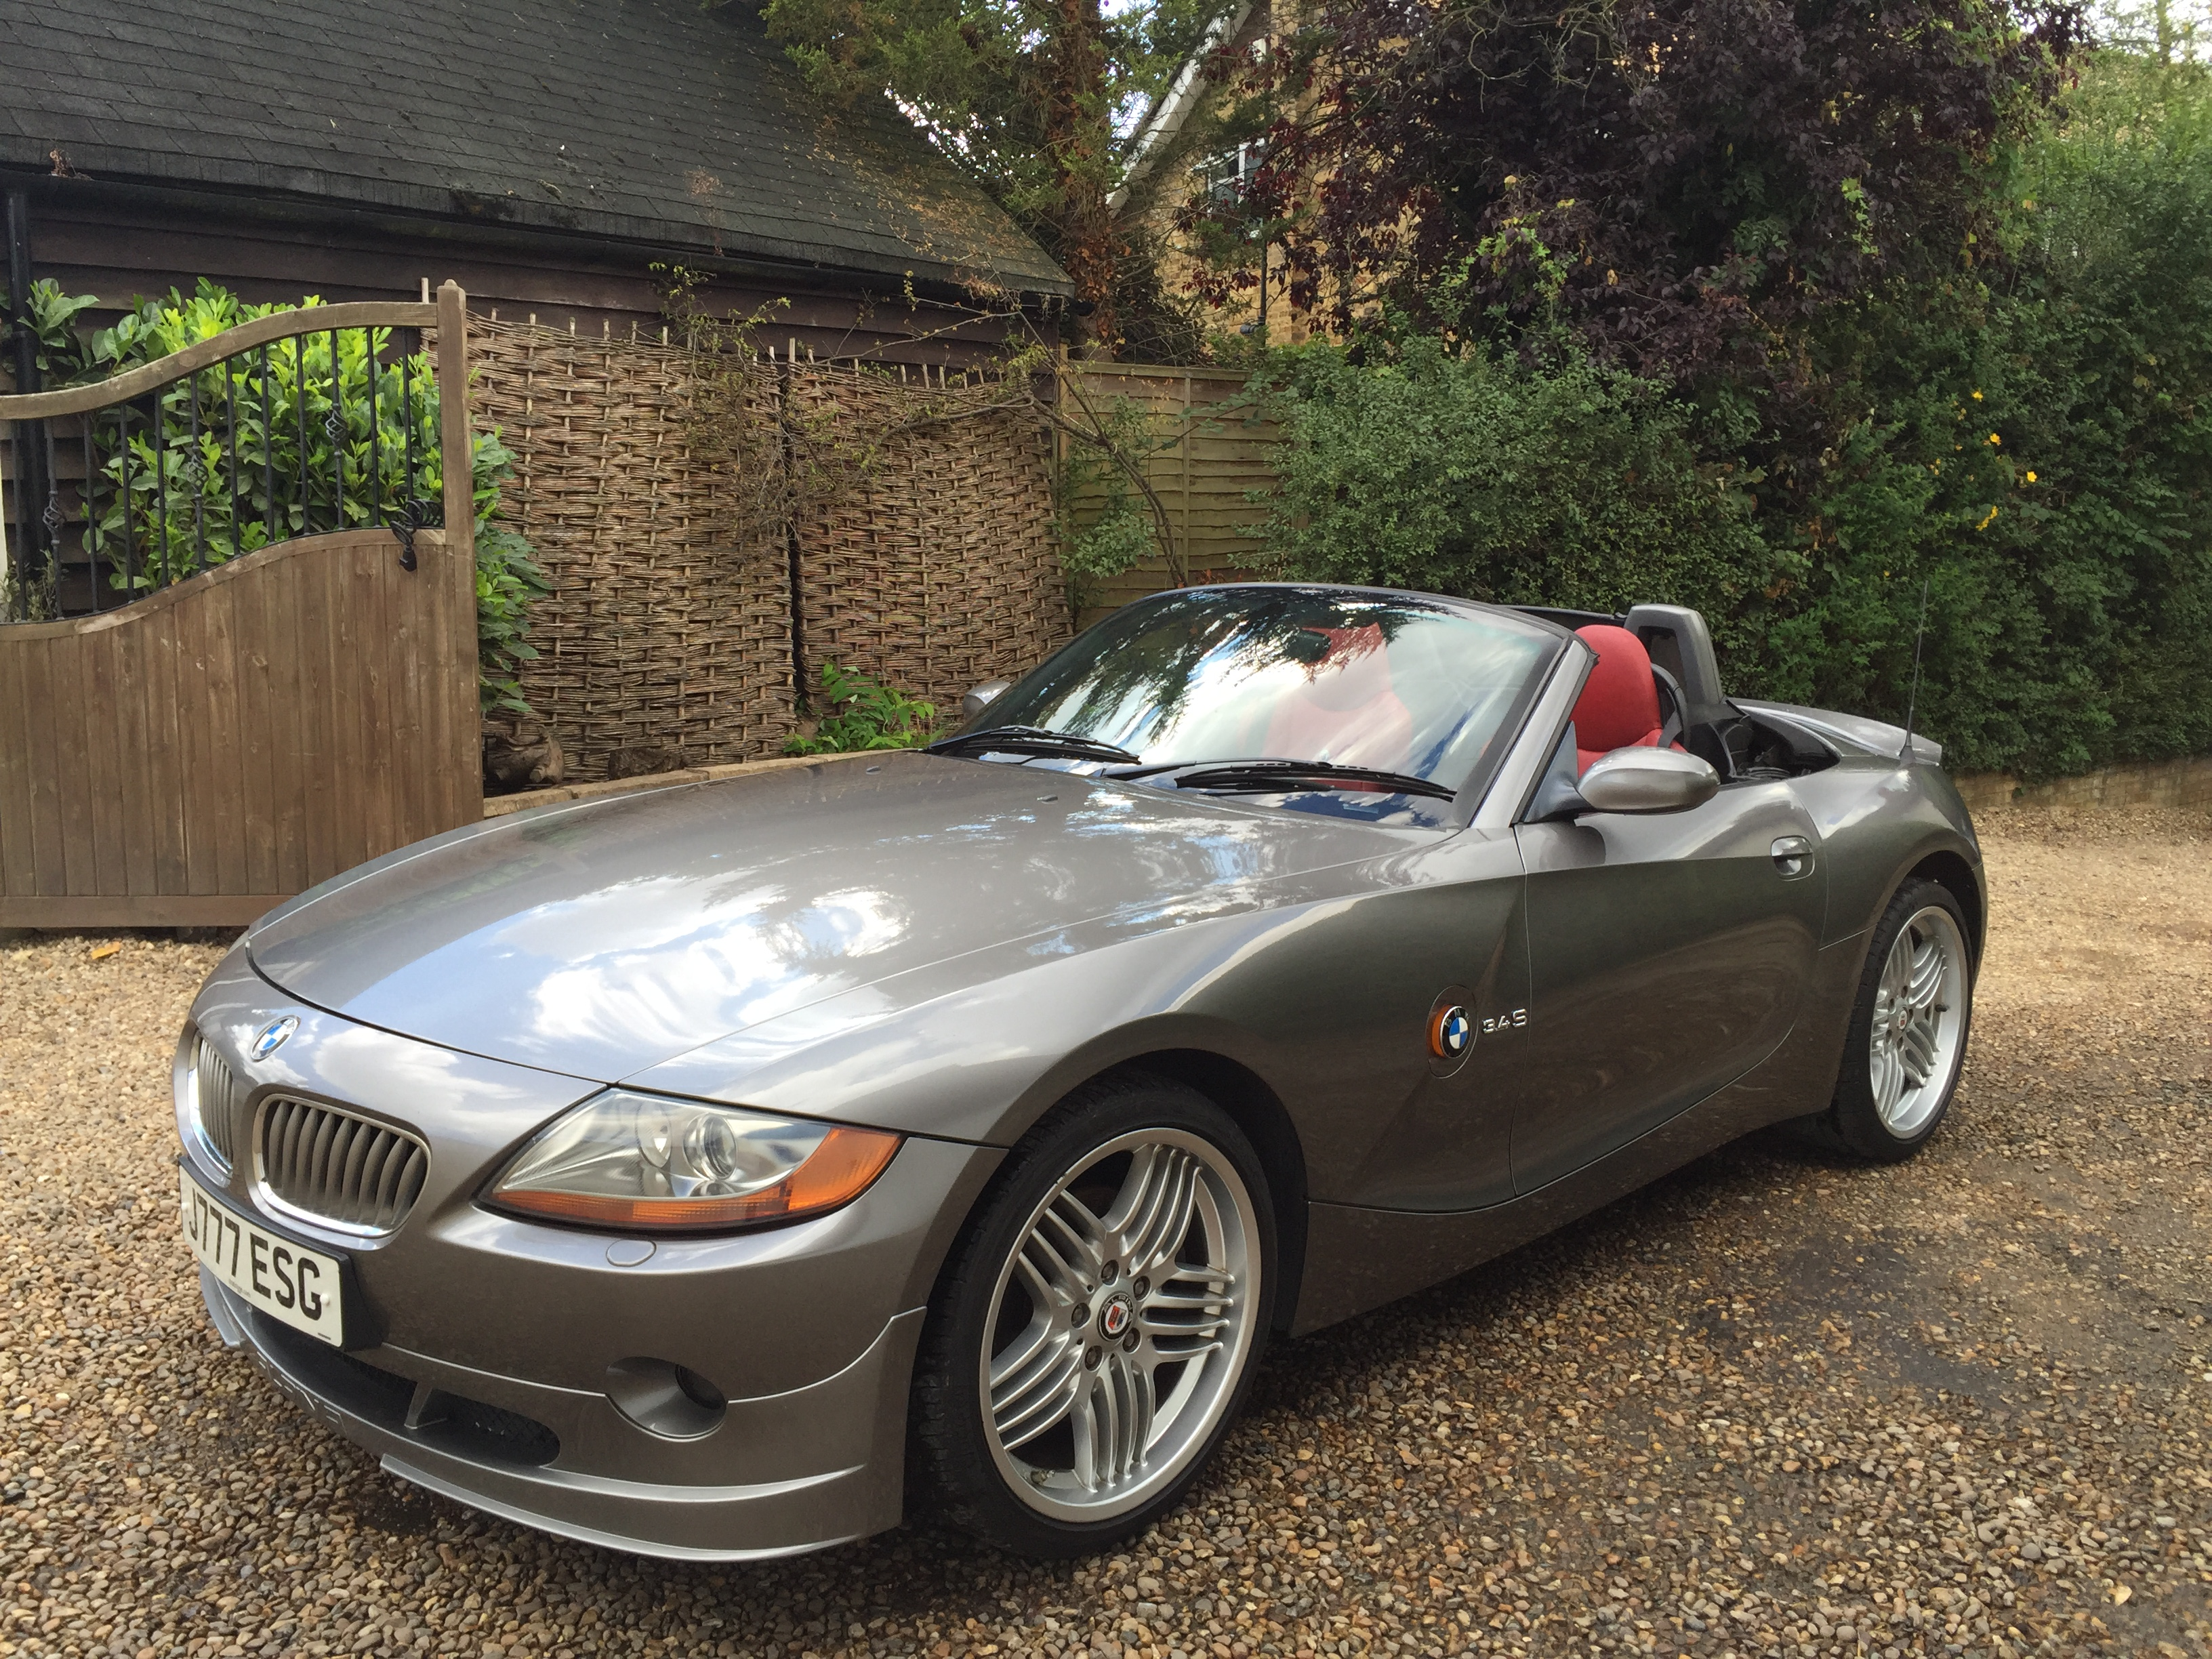 Bmw Z4 3 4s Alpina Roadster 6 Speed Manual Gs Vehicle Servcies